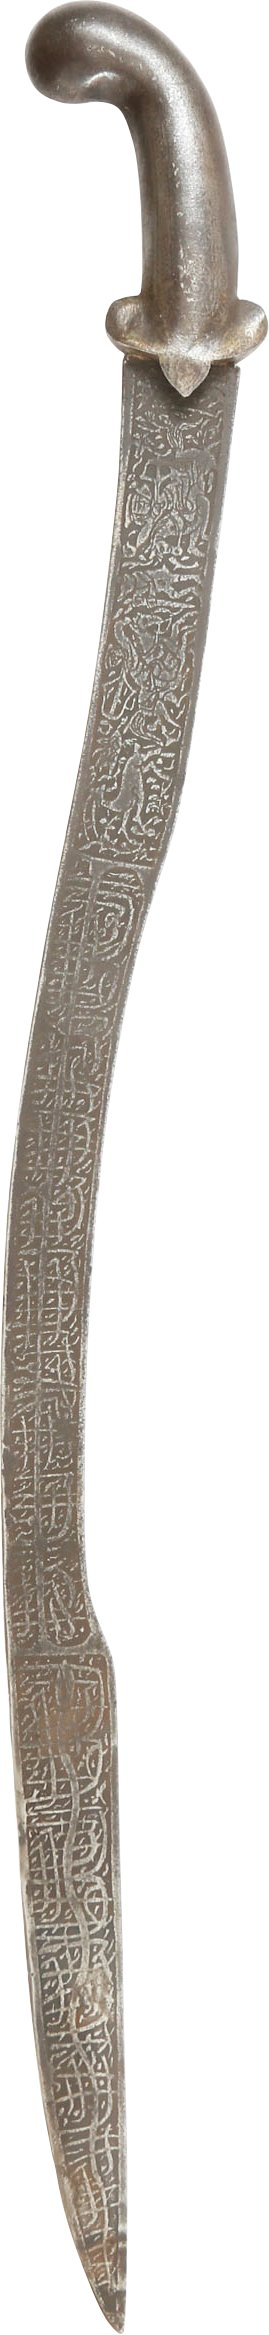 RARE PERSIAN BACKSWORD SHAMSHIR